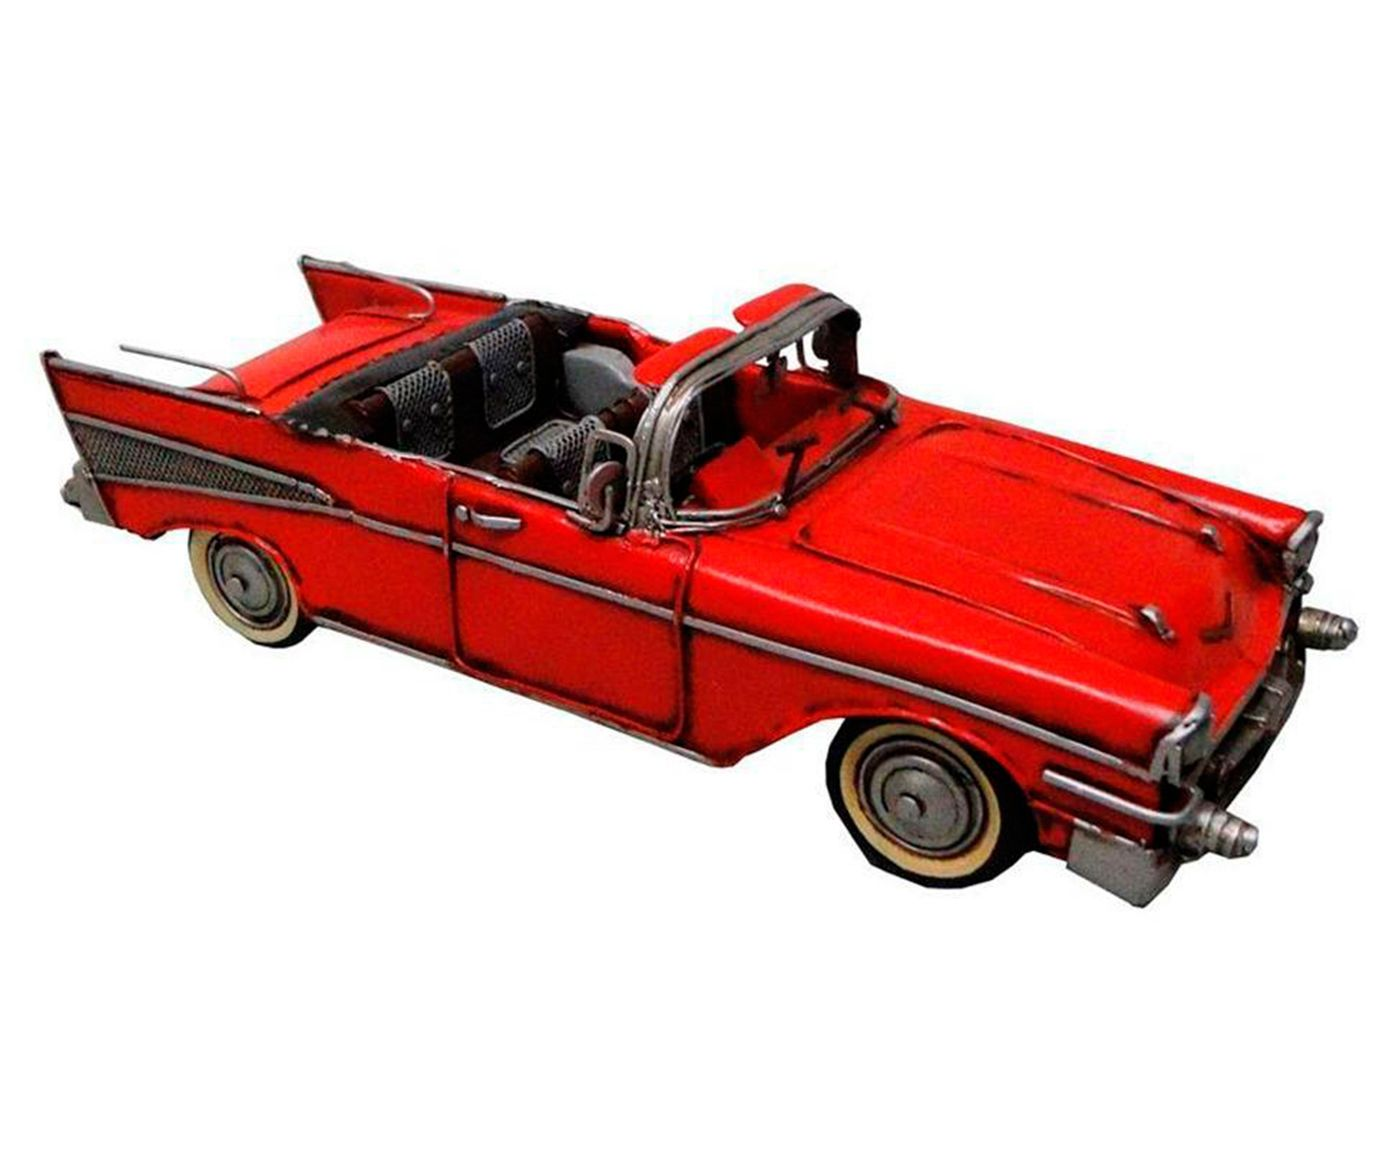 Miniatura Bel Air Nomad 1957 Oldway   Westwing.com.br